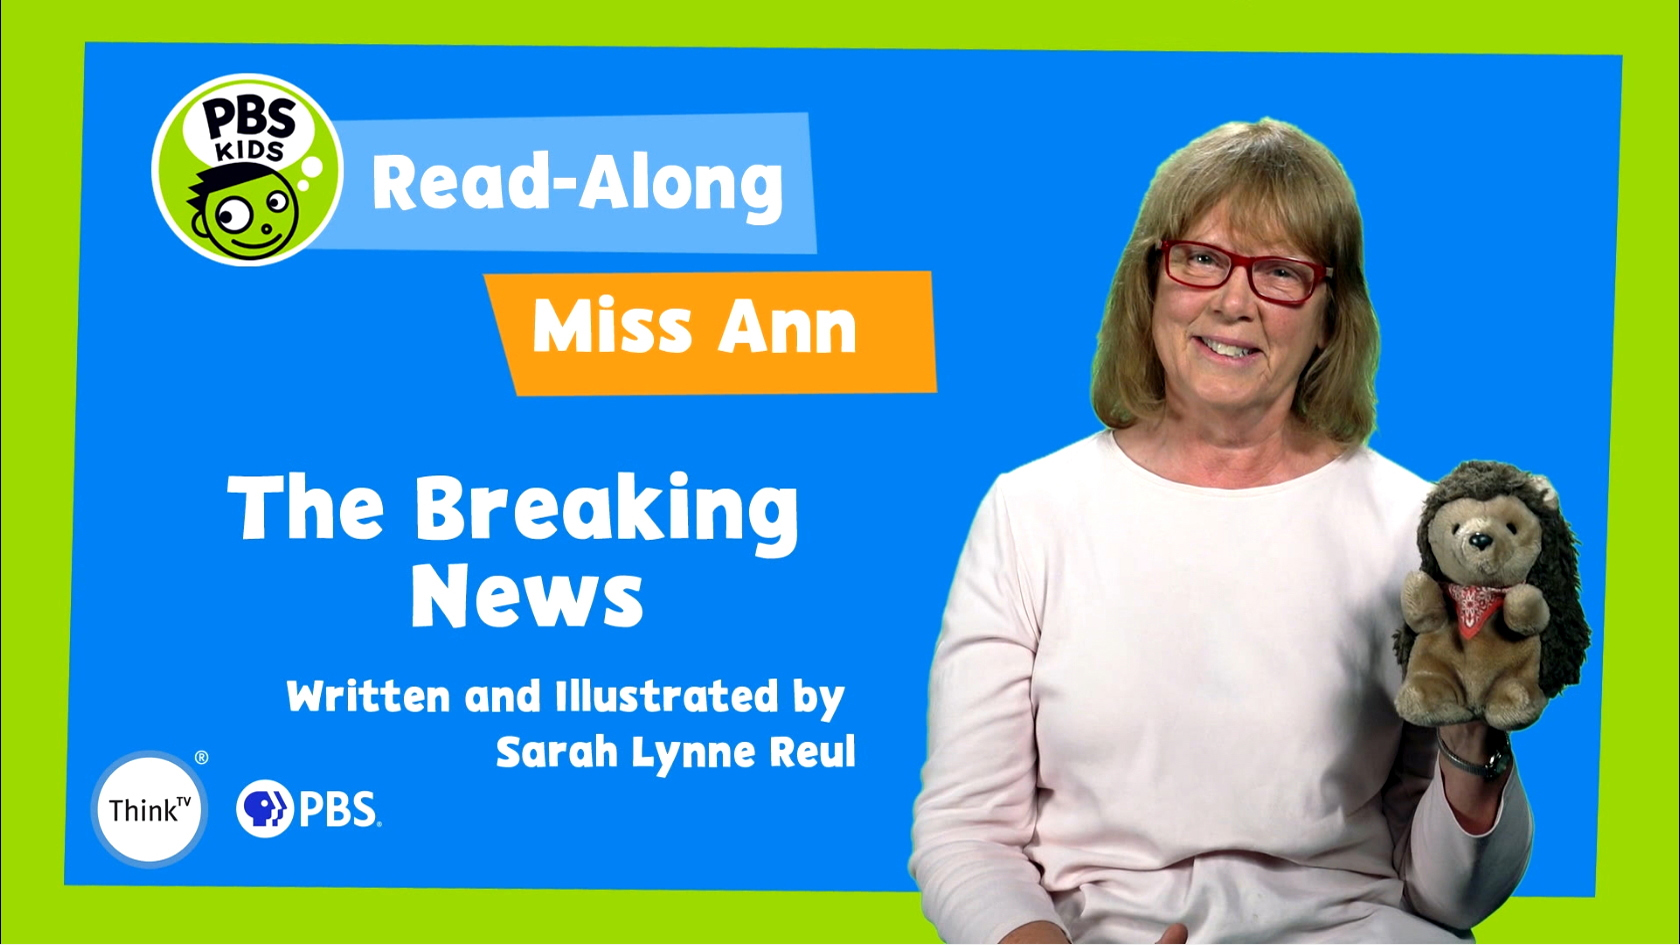 Read-Along with Miss Ann: The Breaking News